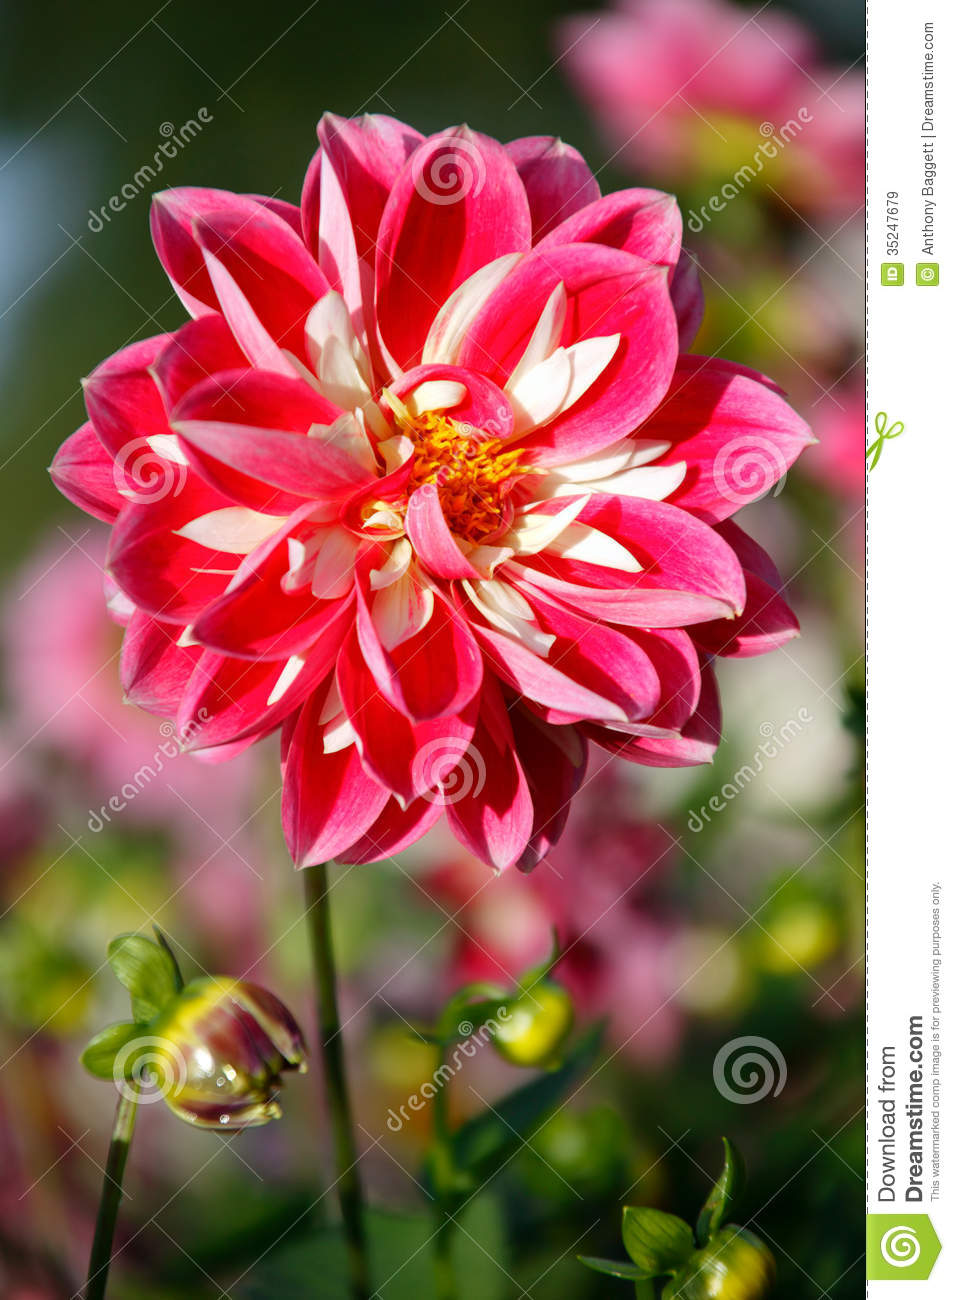 Dahlia stock image image of autumn nobody blooming 35247679 dahlia izmirmasajfo